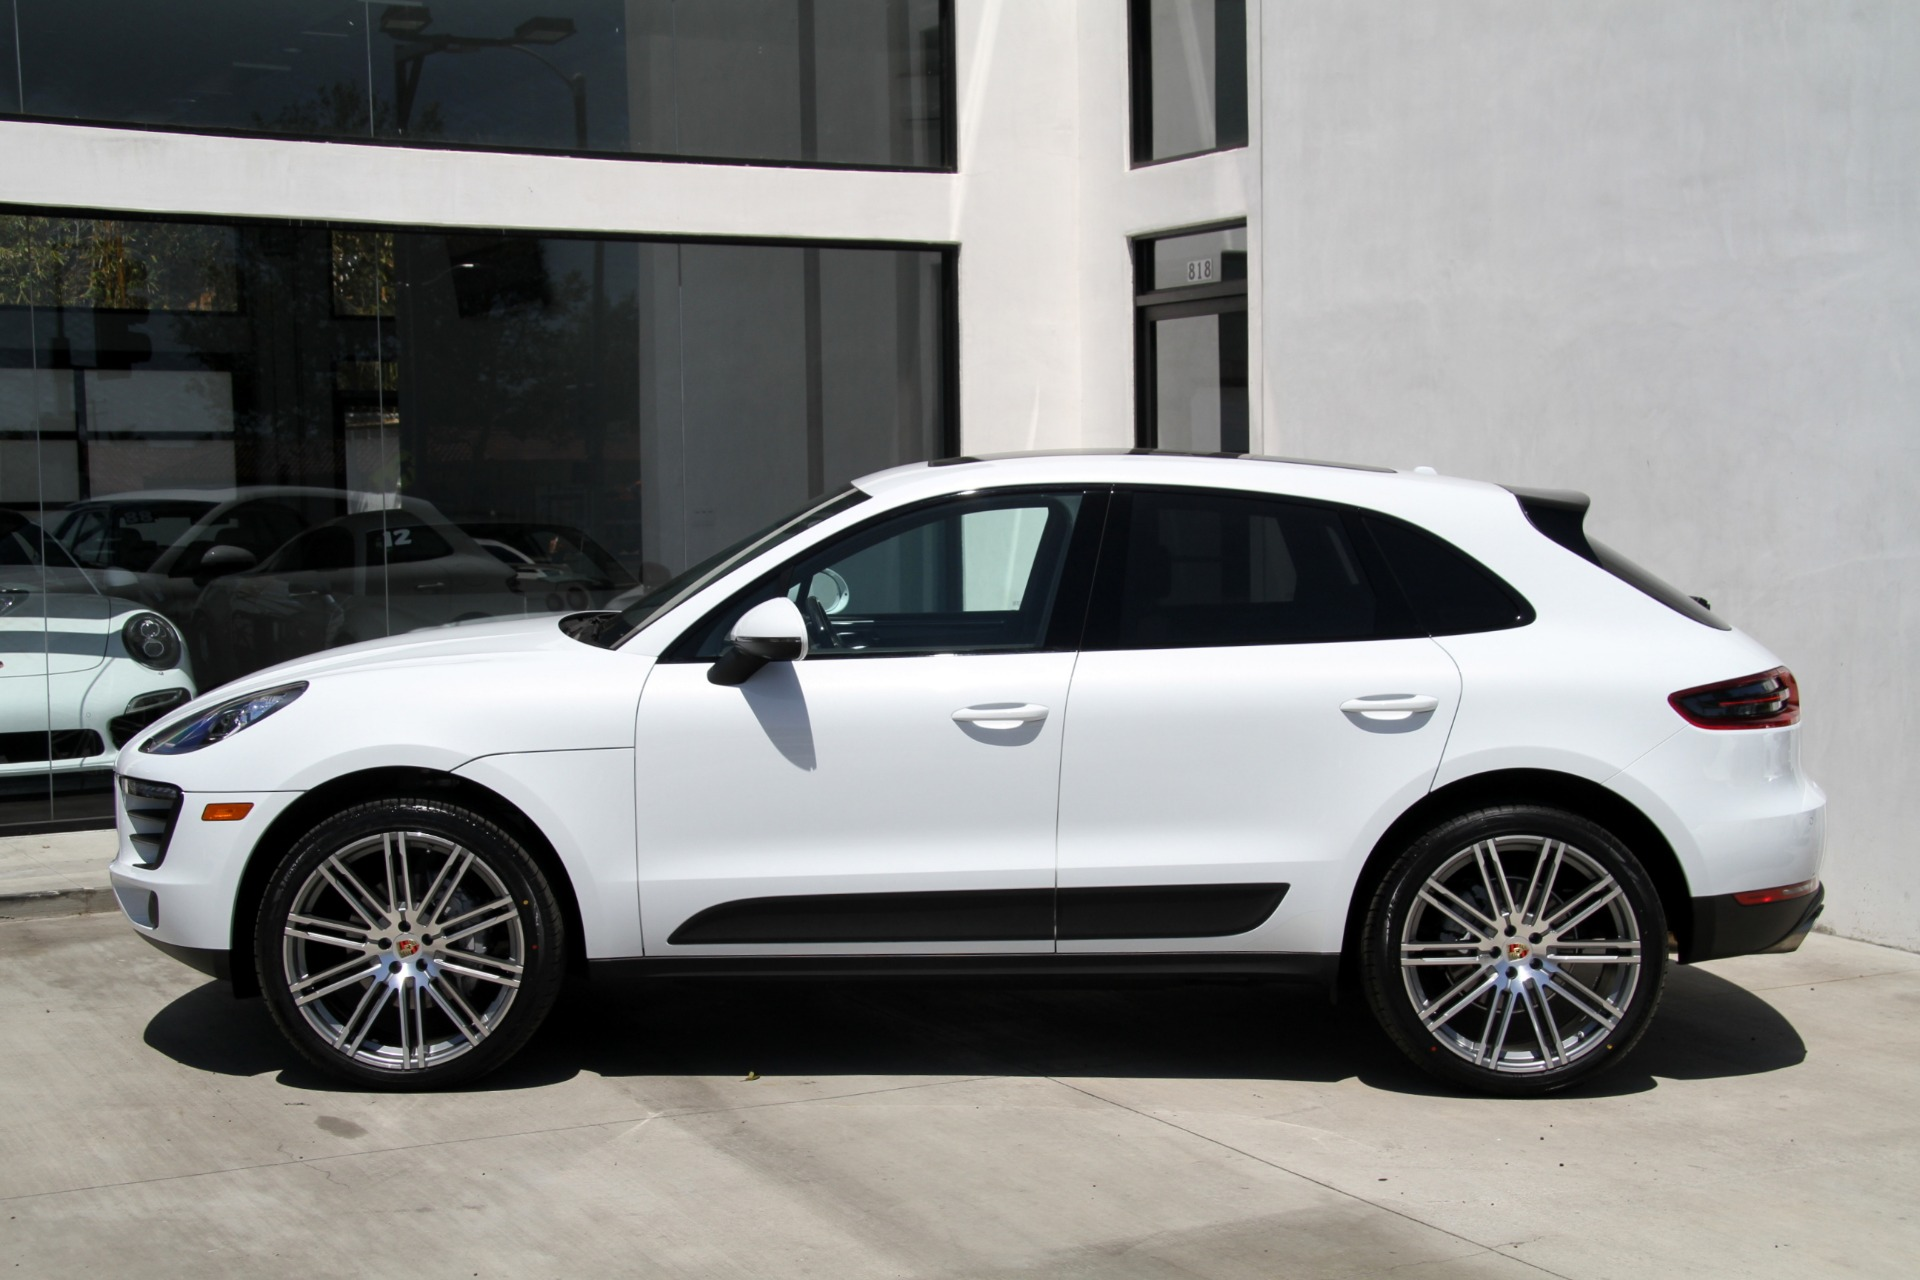 2017 porsche macan s stock 6192 for sale near redondo. Black Bedroom Furniture Sets. Home Design Ideas